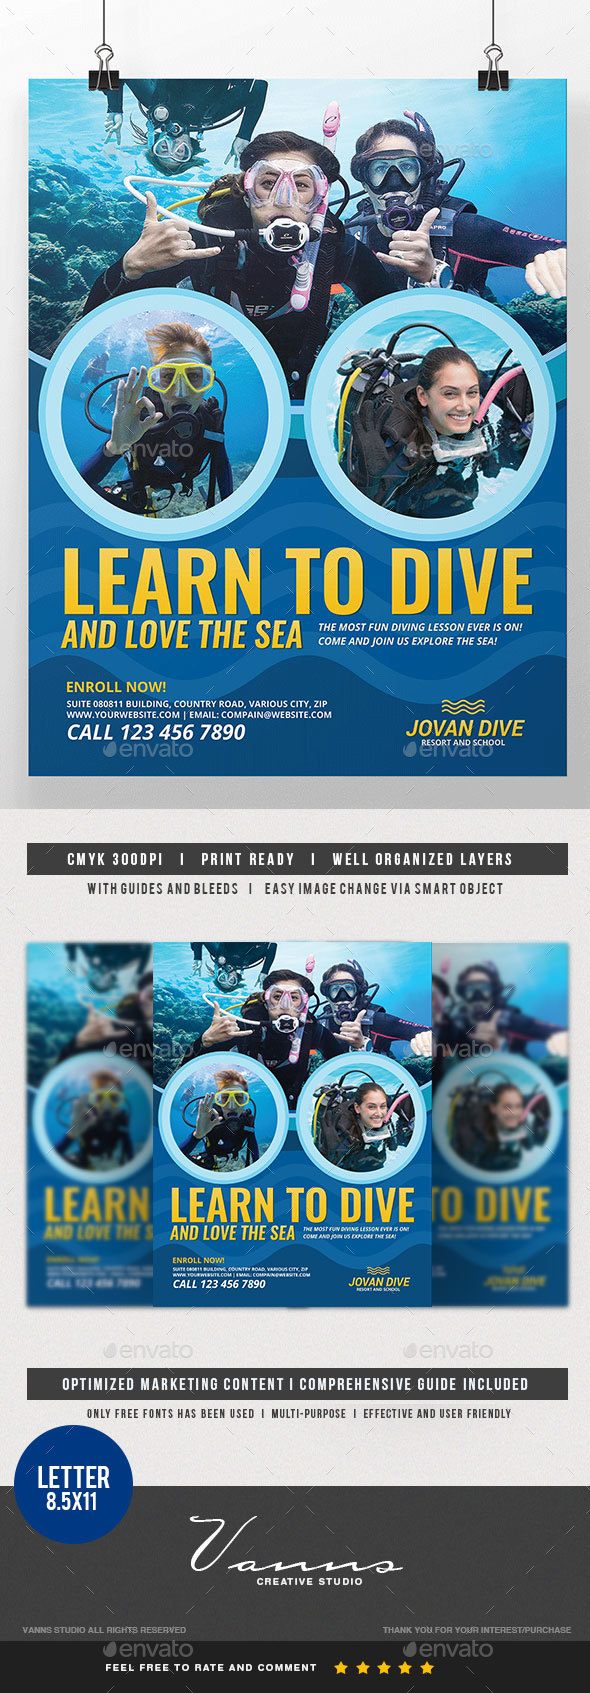 Diving Services Flyer - Commerce Flyers